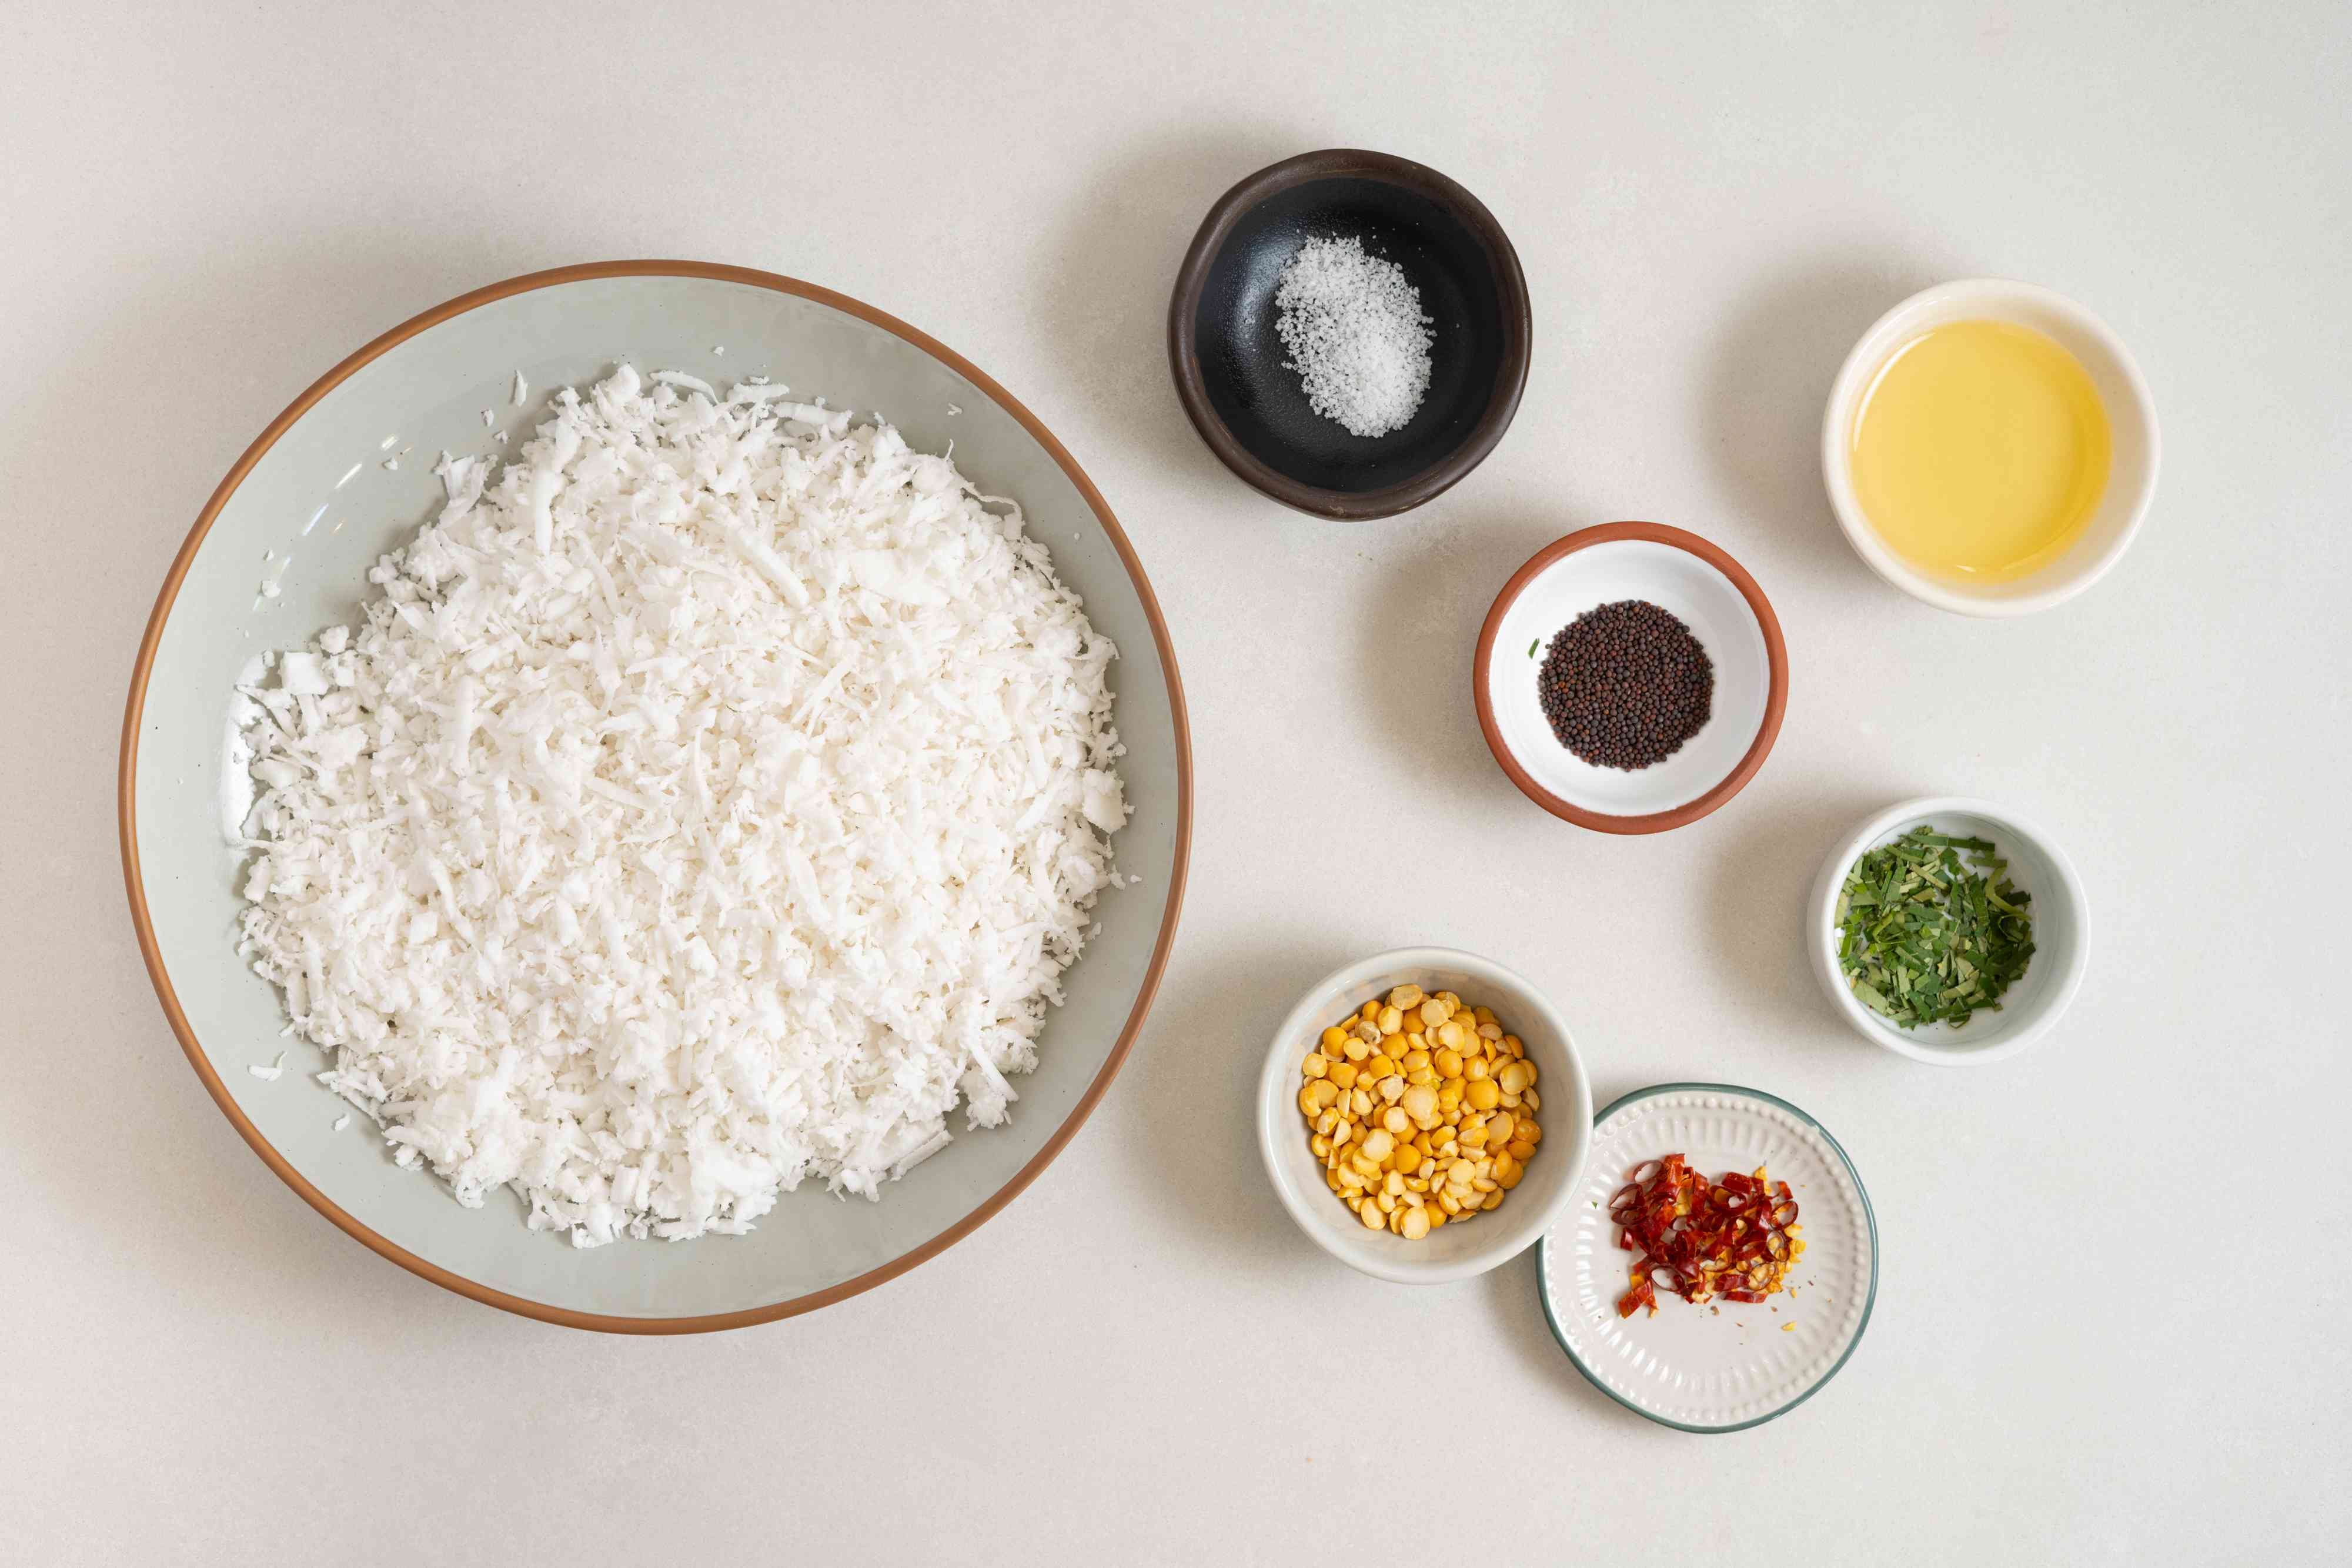 South Indian Coconut Chutney ingredients